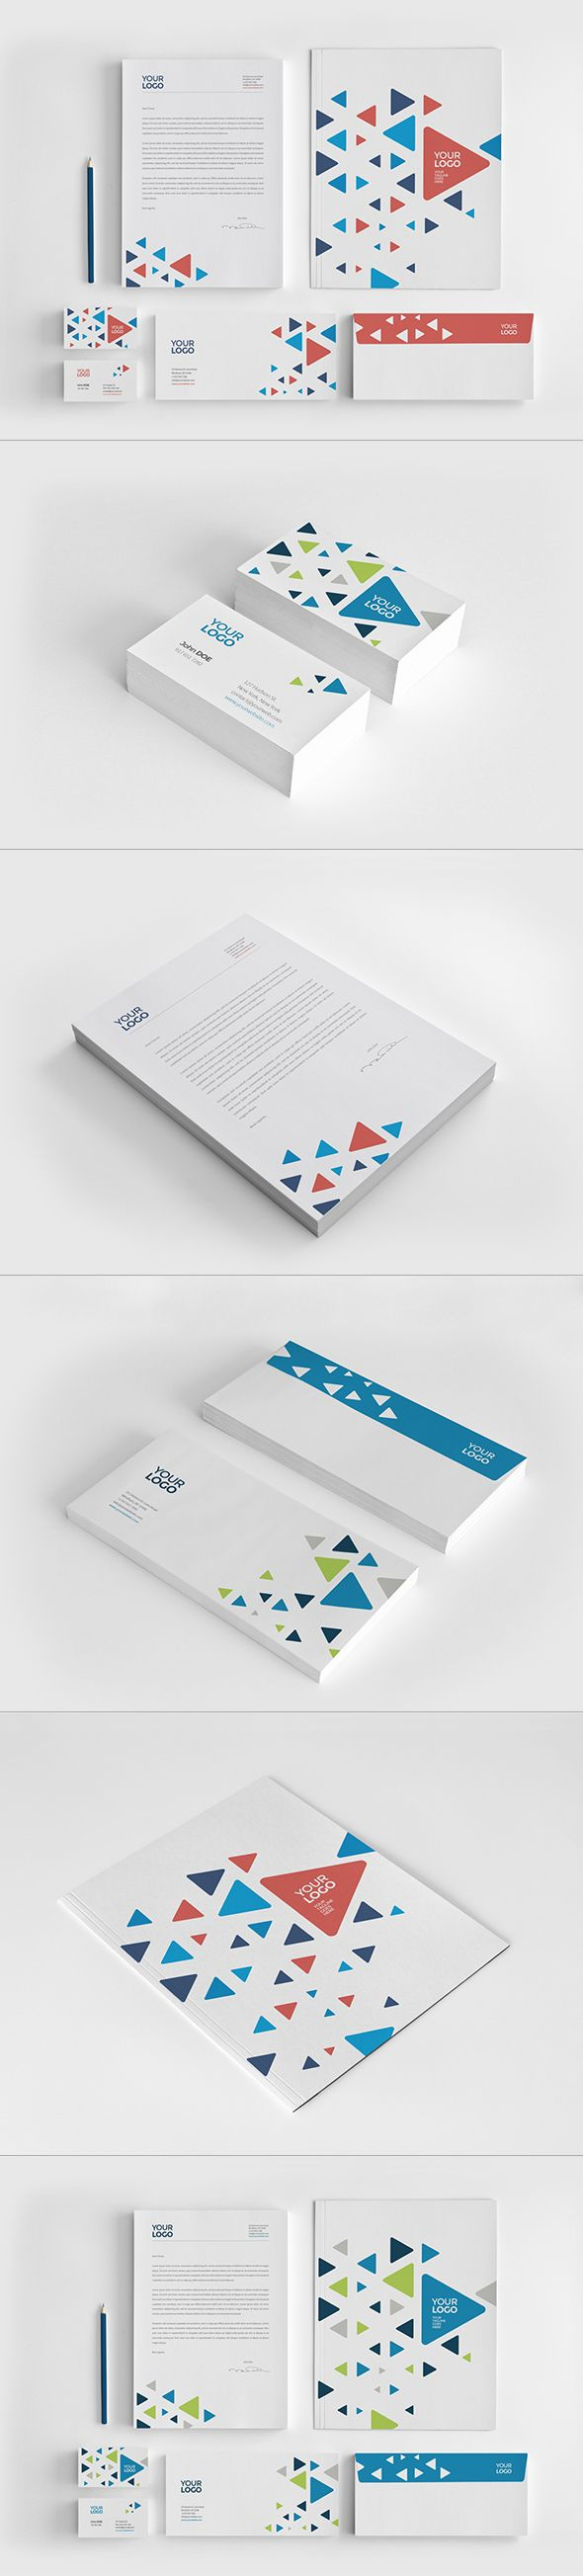 Cool Triangles Stationery. Download here: http://graphicriver.net/item/cool-triangles-stationery/12089930?ref=abradesign #stationery #design #pattern